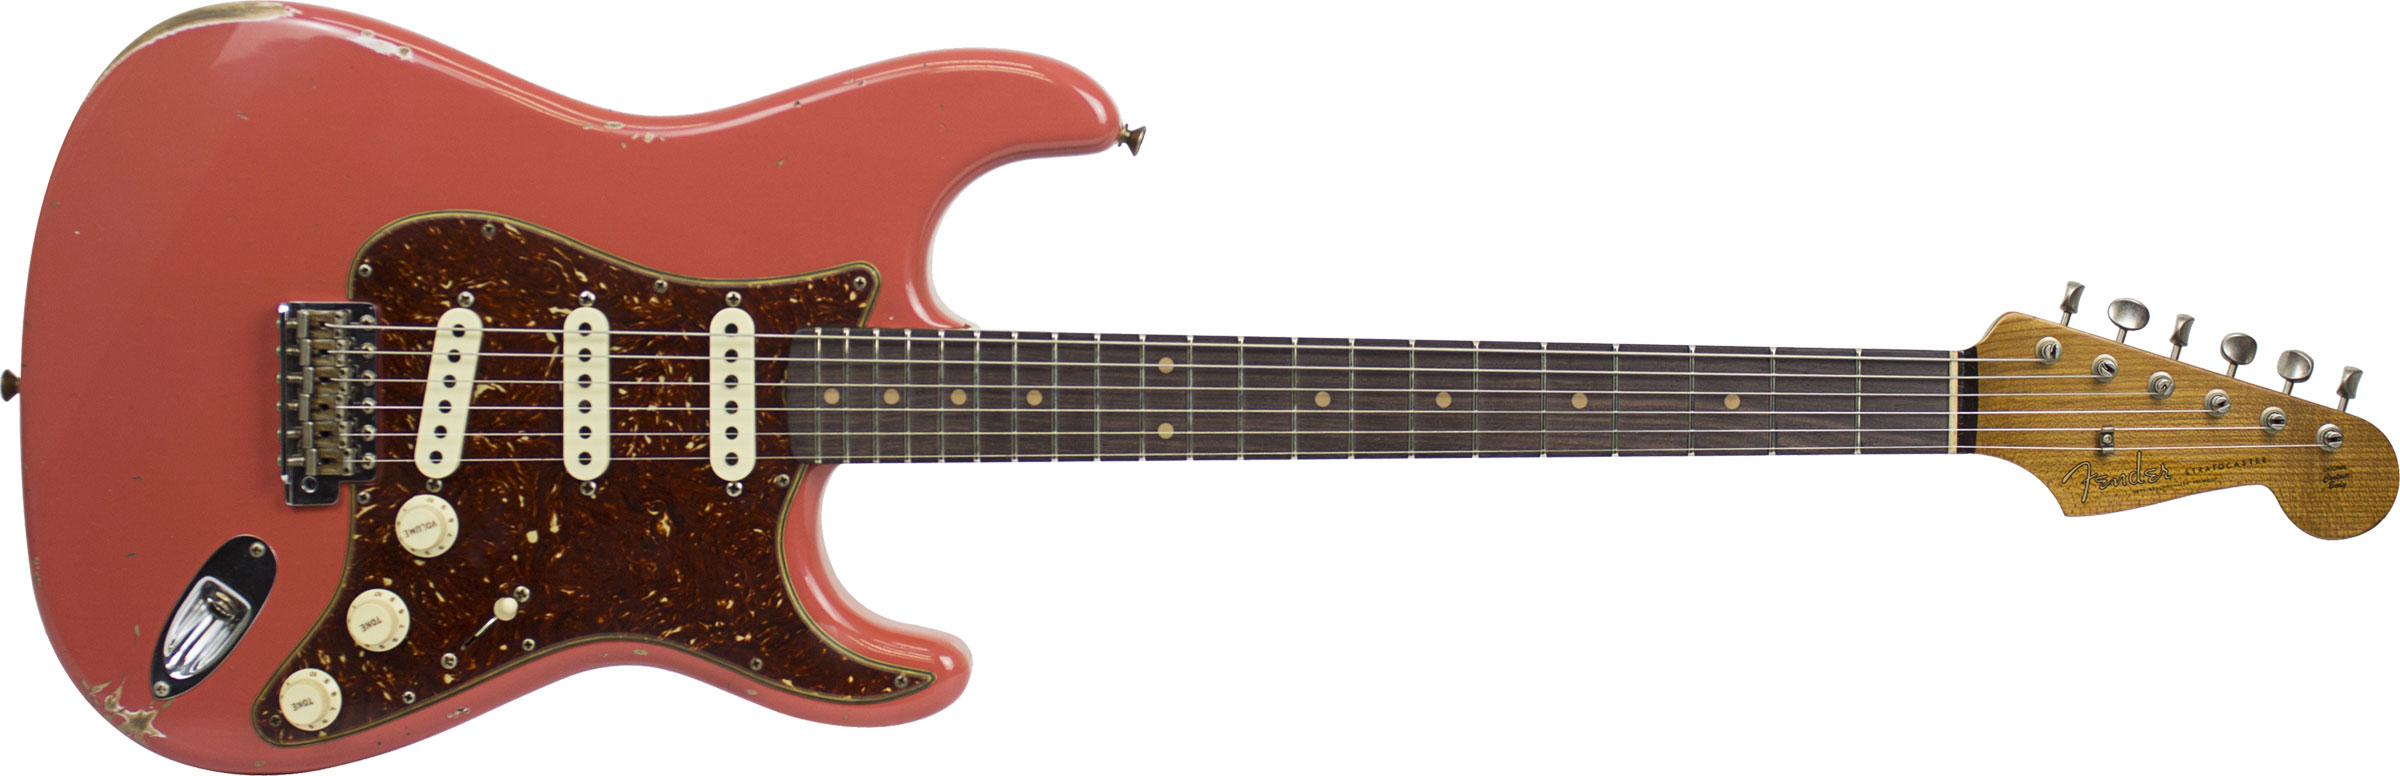 GUITARRA FENDER 60 STRATOCASTER ROASTED RELIC LTD EDITION 923-5000-670 FADED AGED FIESTA RED